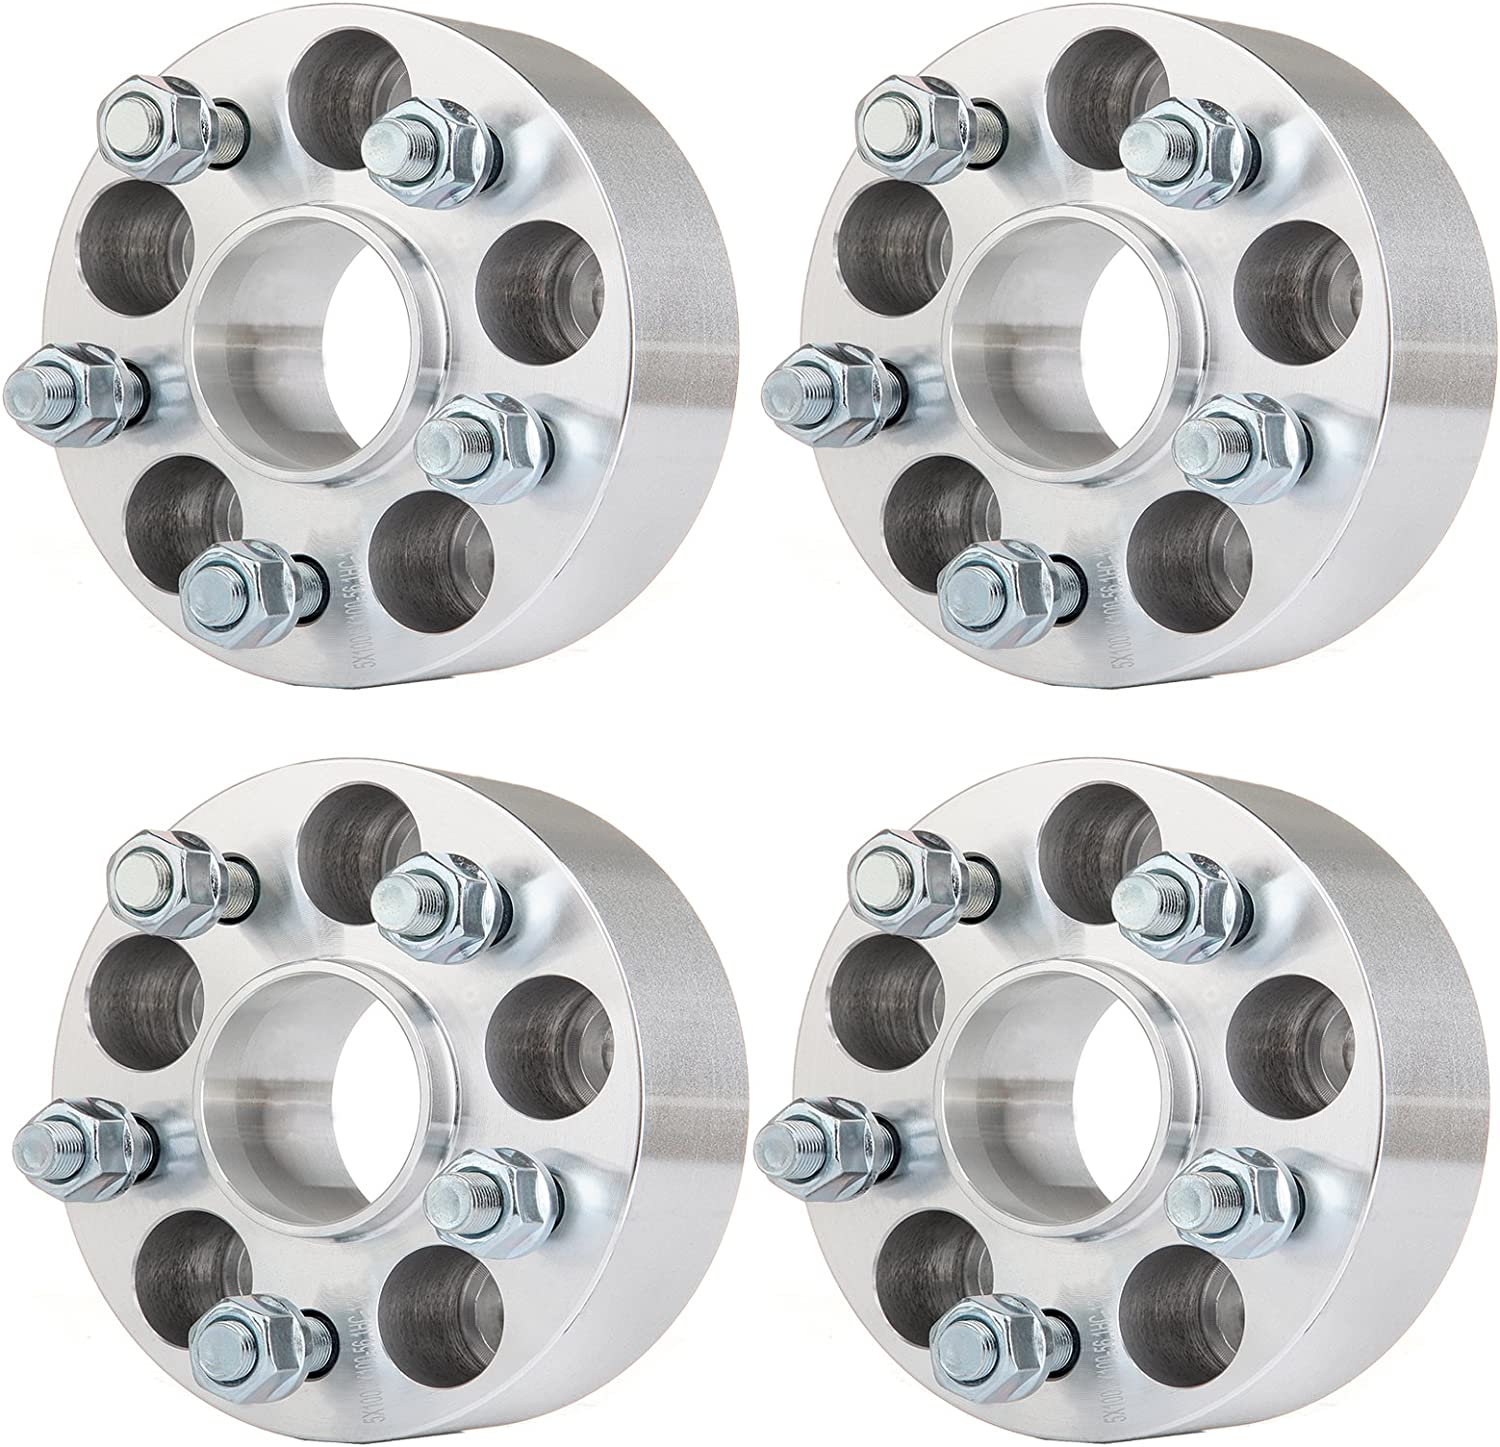 5x108, 25mm 2pcs 1 inch 5x4.25 Hubcentric Wheel Spacers for Ford C-Max Focus Taurus Thunderbird Jaguar F-Type S-Type XJR XF XFR Lincoln MKZ and MANY MORE 63.4mm Bore with 12x1.5 Studs